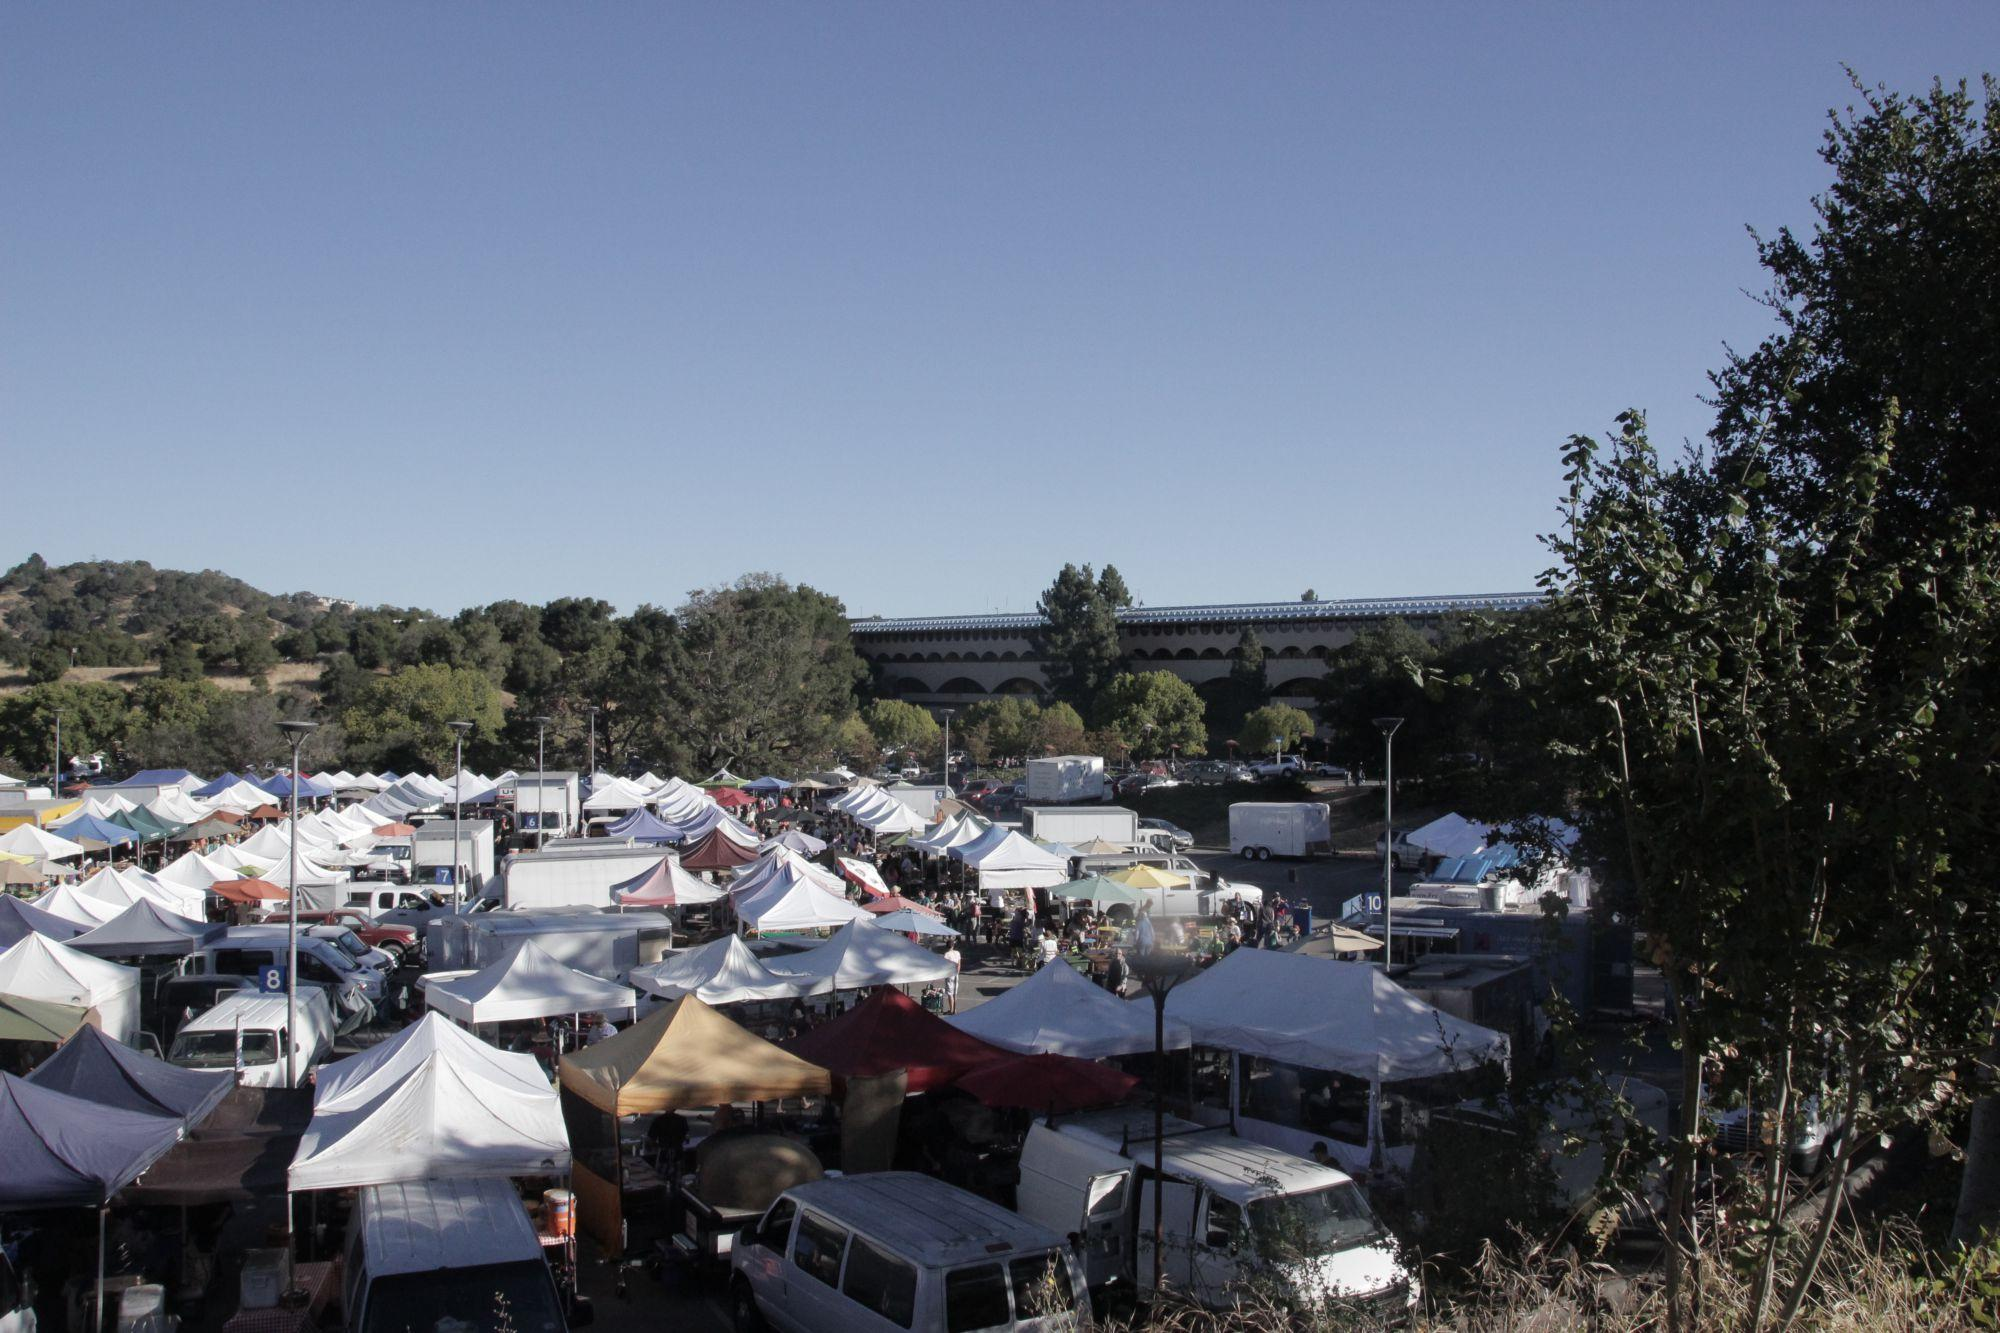 Permanent farmers' market could yield job opportunities for students